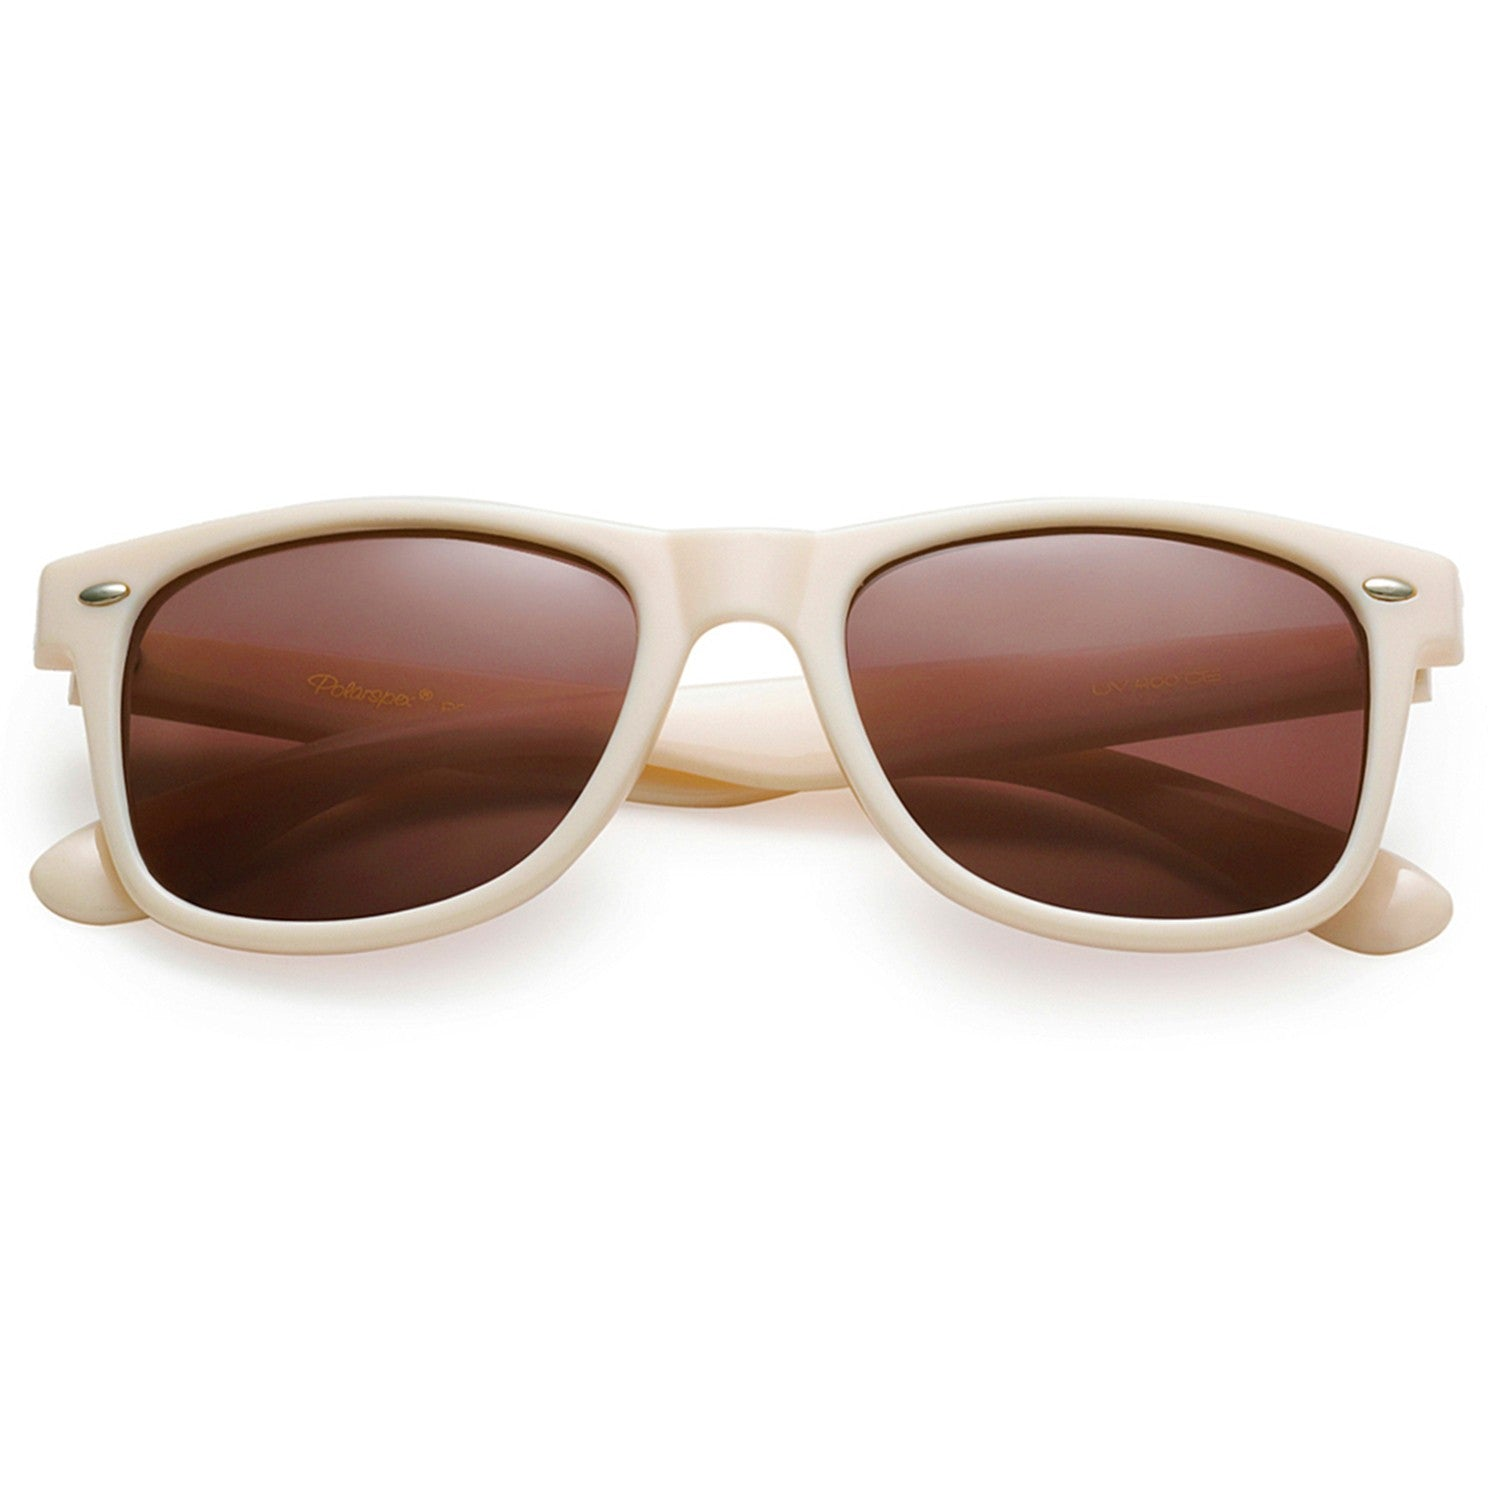 Polarspex Polarized 80's Retro Style Unisex Sunglasses with Ivory Beige Frames and Ash Smoke Lenses